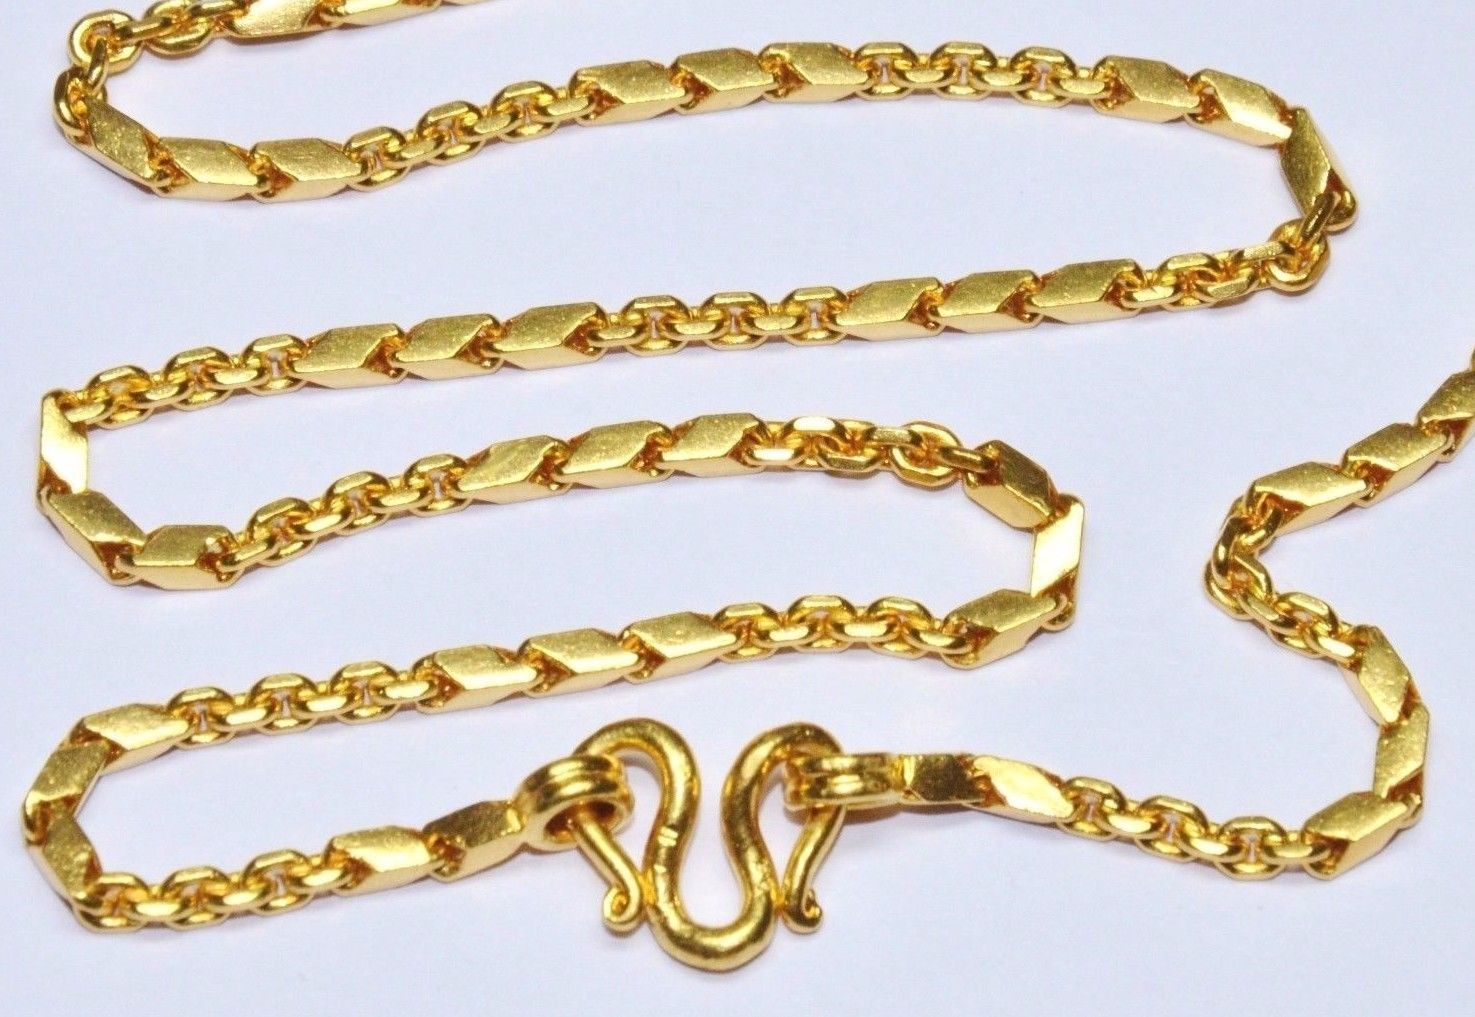 store cuban link chains jewelry necklace bracelet tight and finish wide yellow chain mens product filled inches set gold miami thick